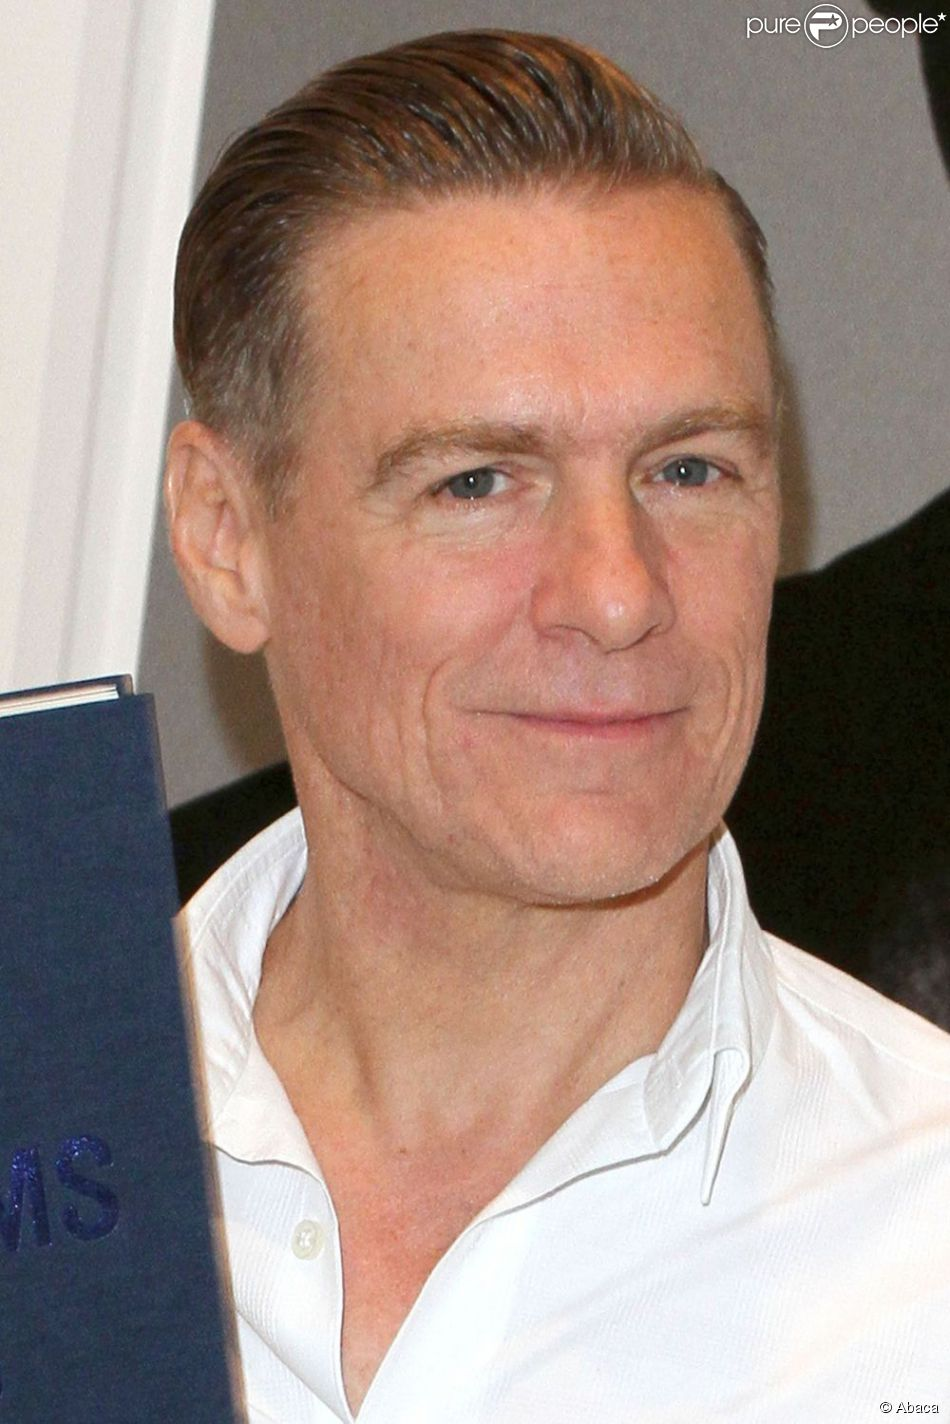 Bryan adams and alicia grimaldi pictures Alicia Grimaldi: Latest News, Pictures Videos - HELLO!